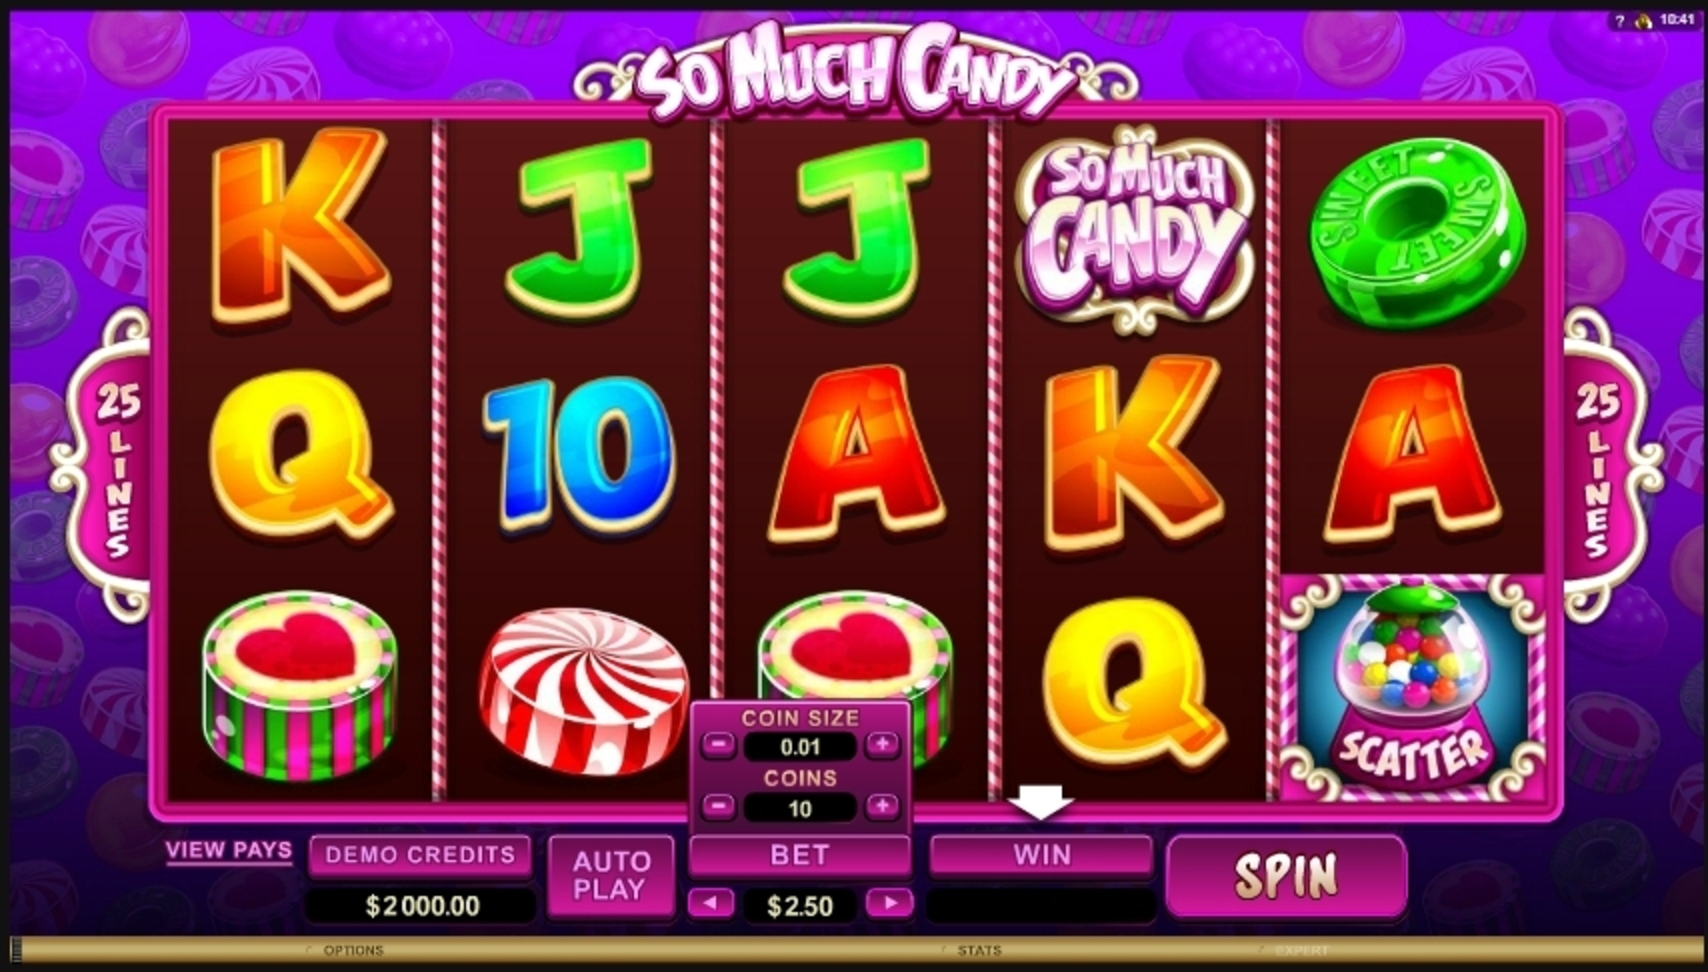 Reels in So Much Candy Slot Game by Microgaming